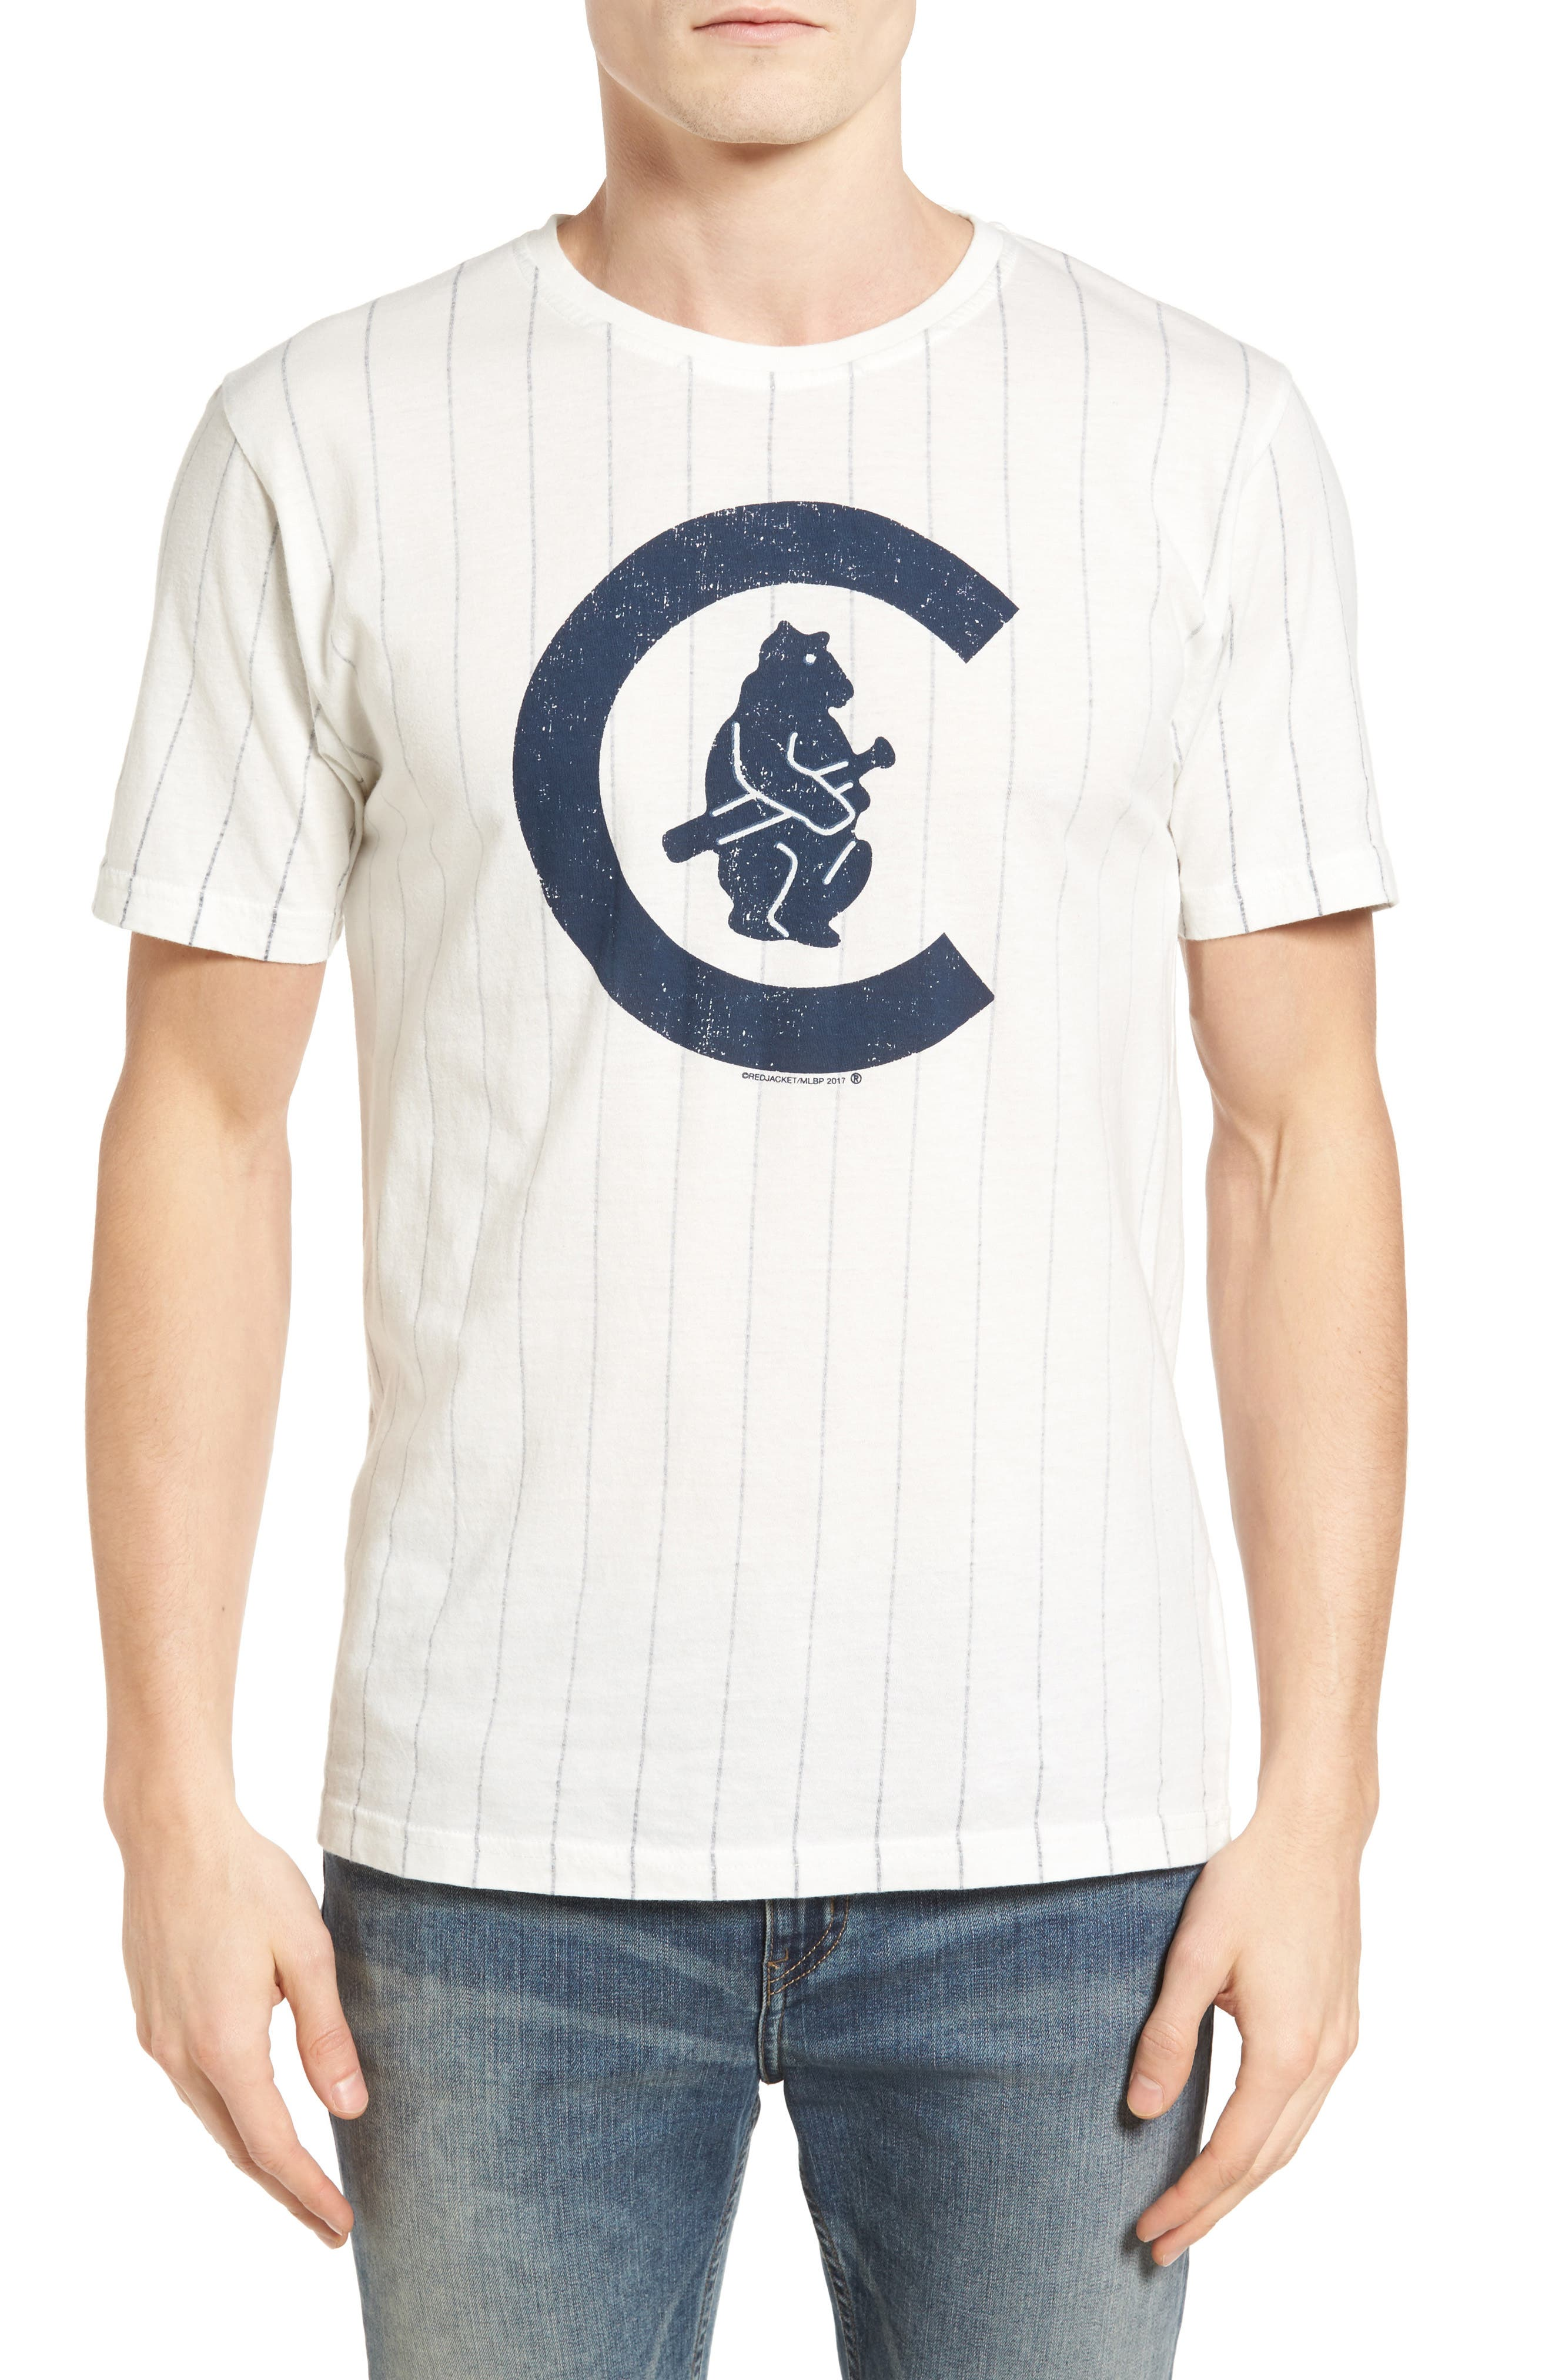 Brass Tack Chicago Cubs T-Shirt,                         Main,                         color,